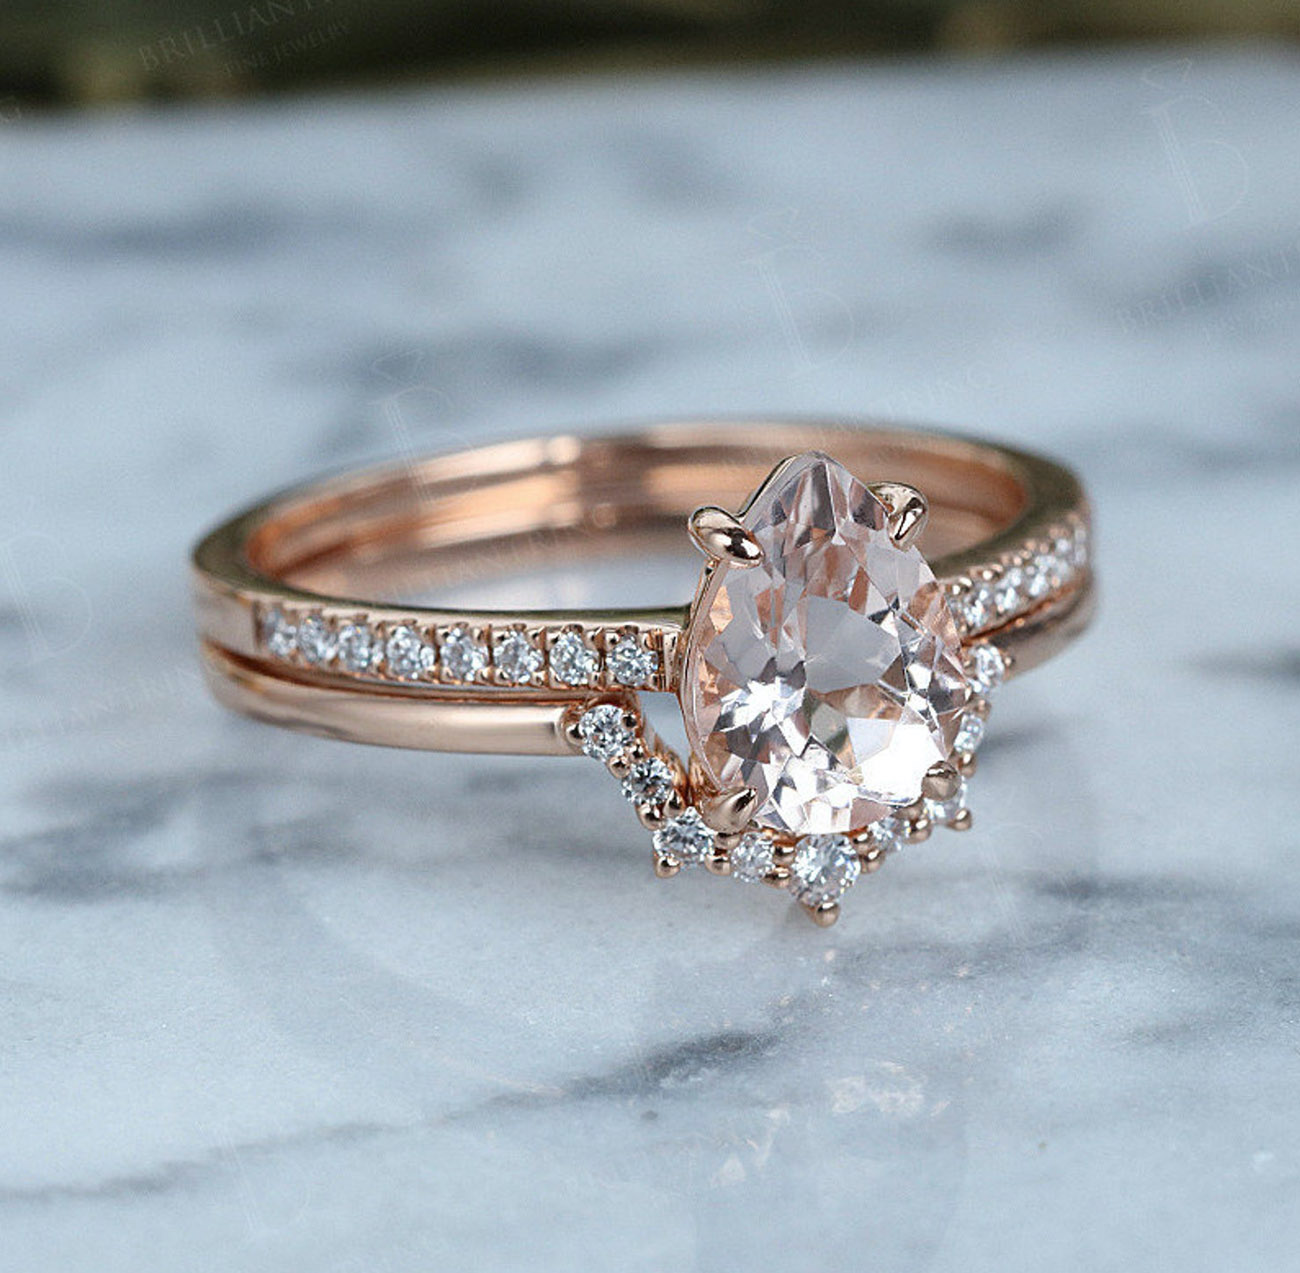 Vintage Morganite engagement ring set art deco ring set Rose gold